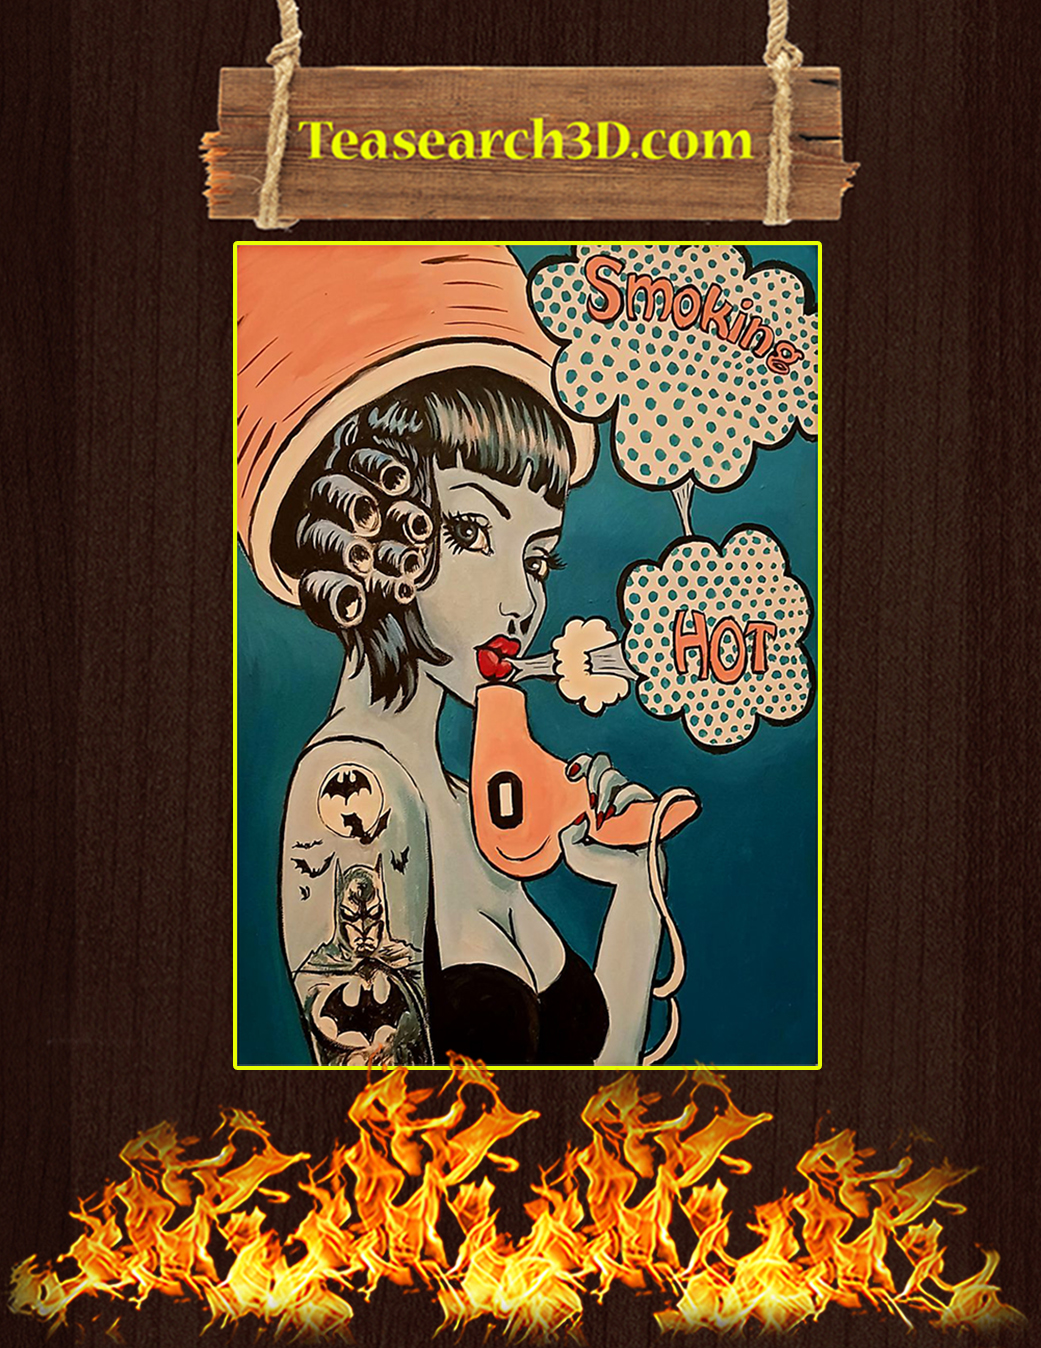 Vintage retro hairdresser smoking hot poster A1